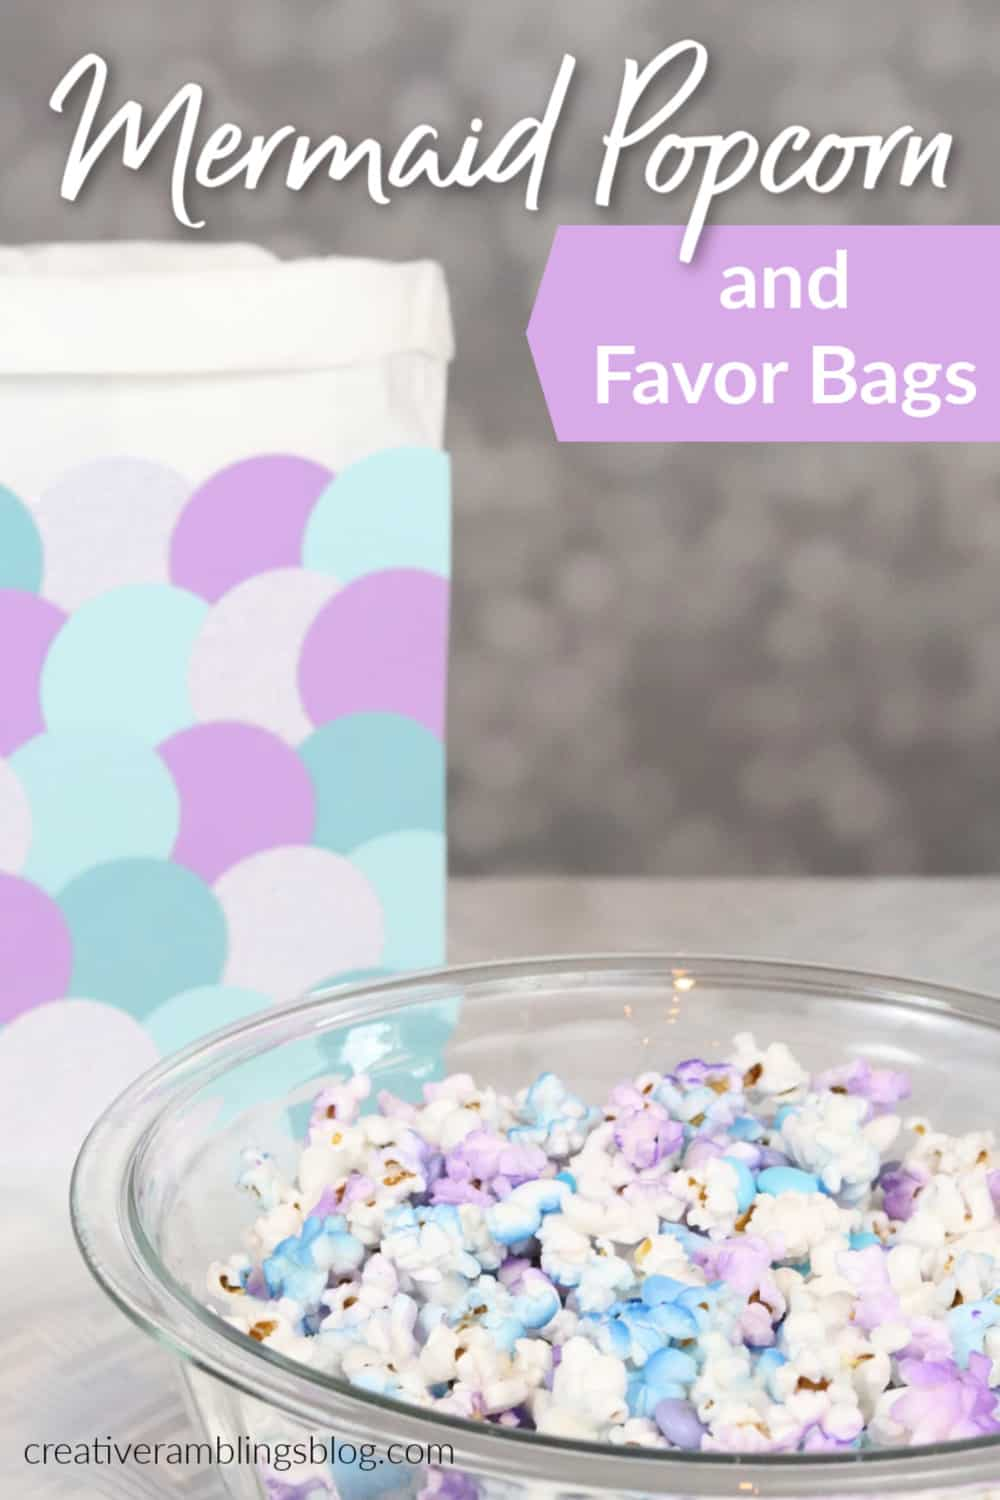 How to make mermaid popcorn and mermaid favor bags